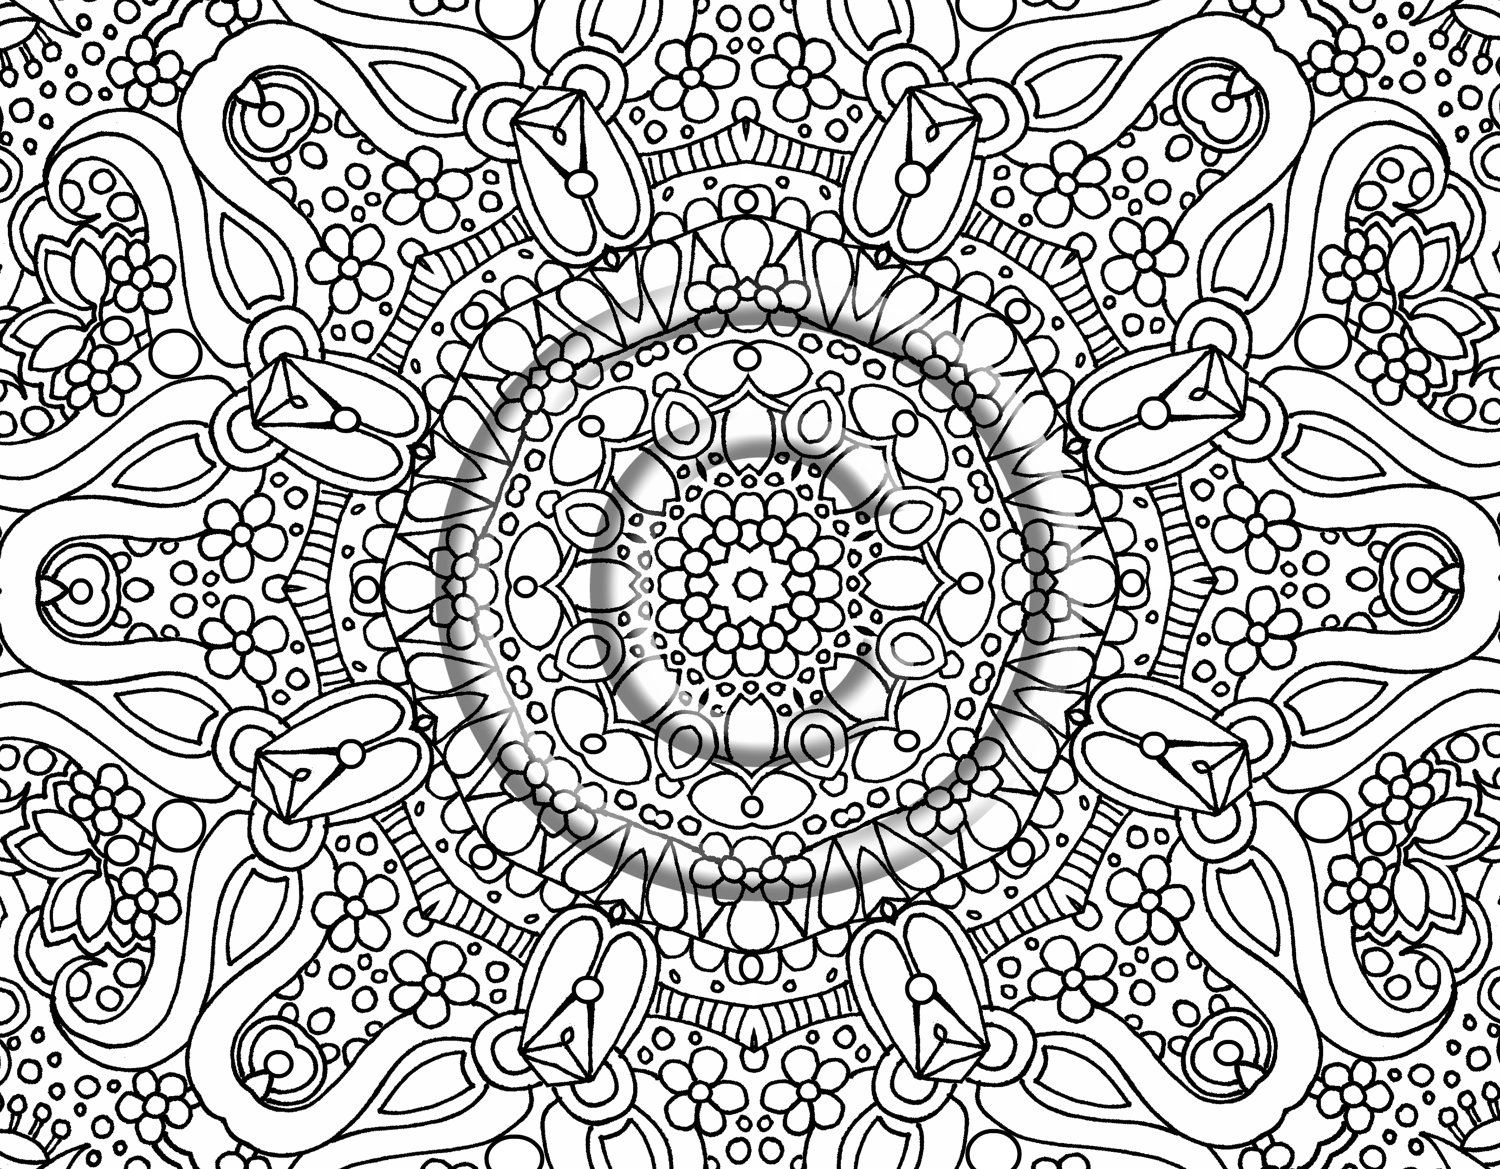 free printable abstract coloring pages for adults printable instrument coloring pages difficult coloring pages printable